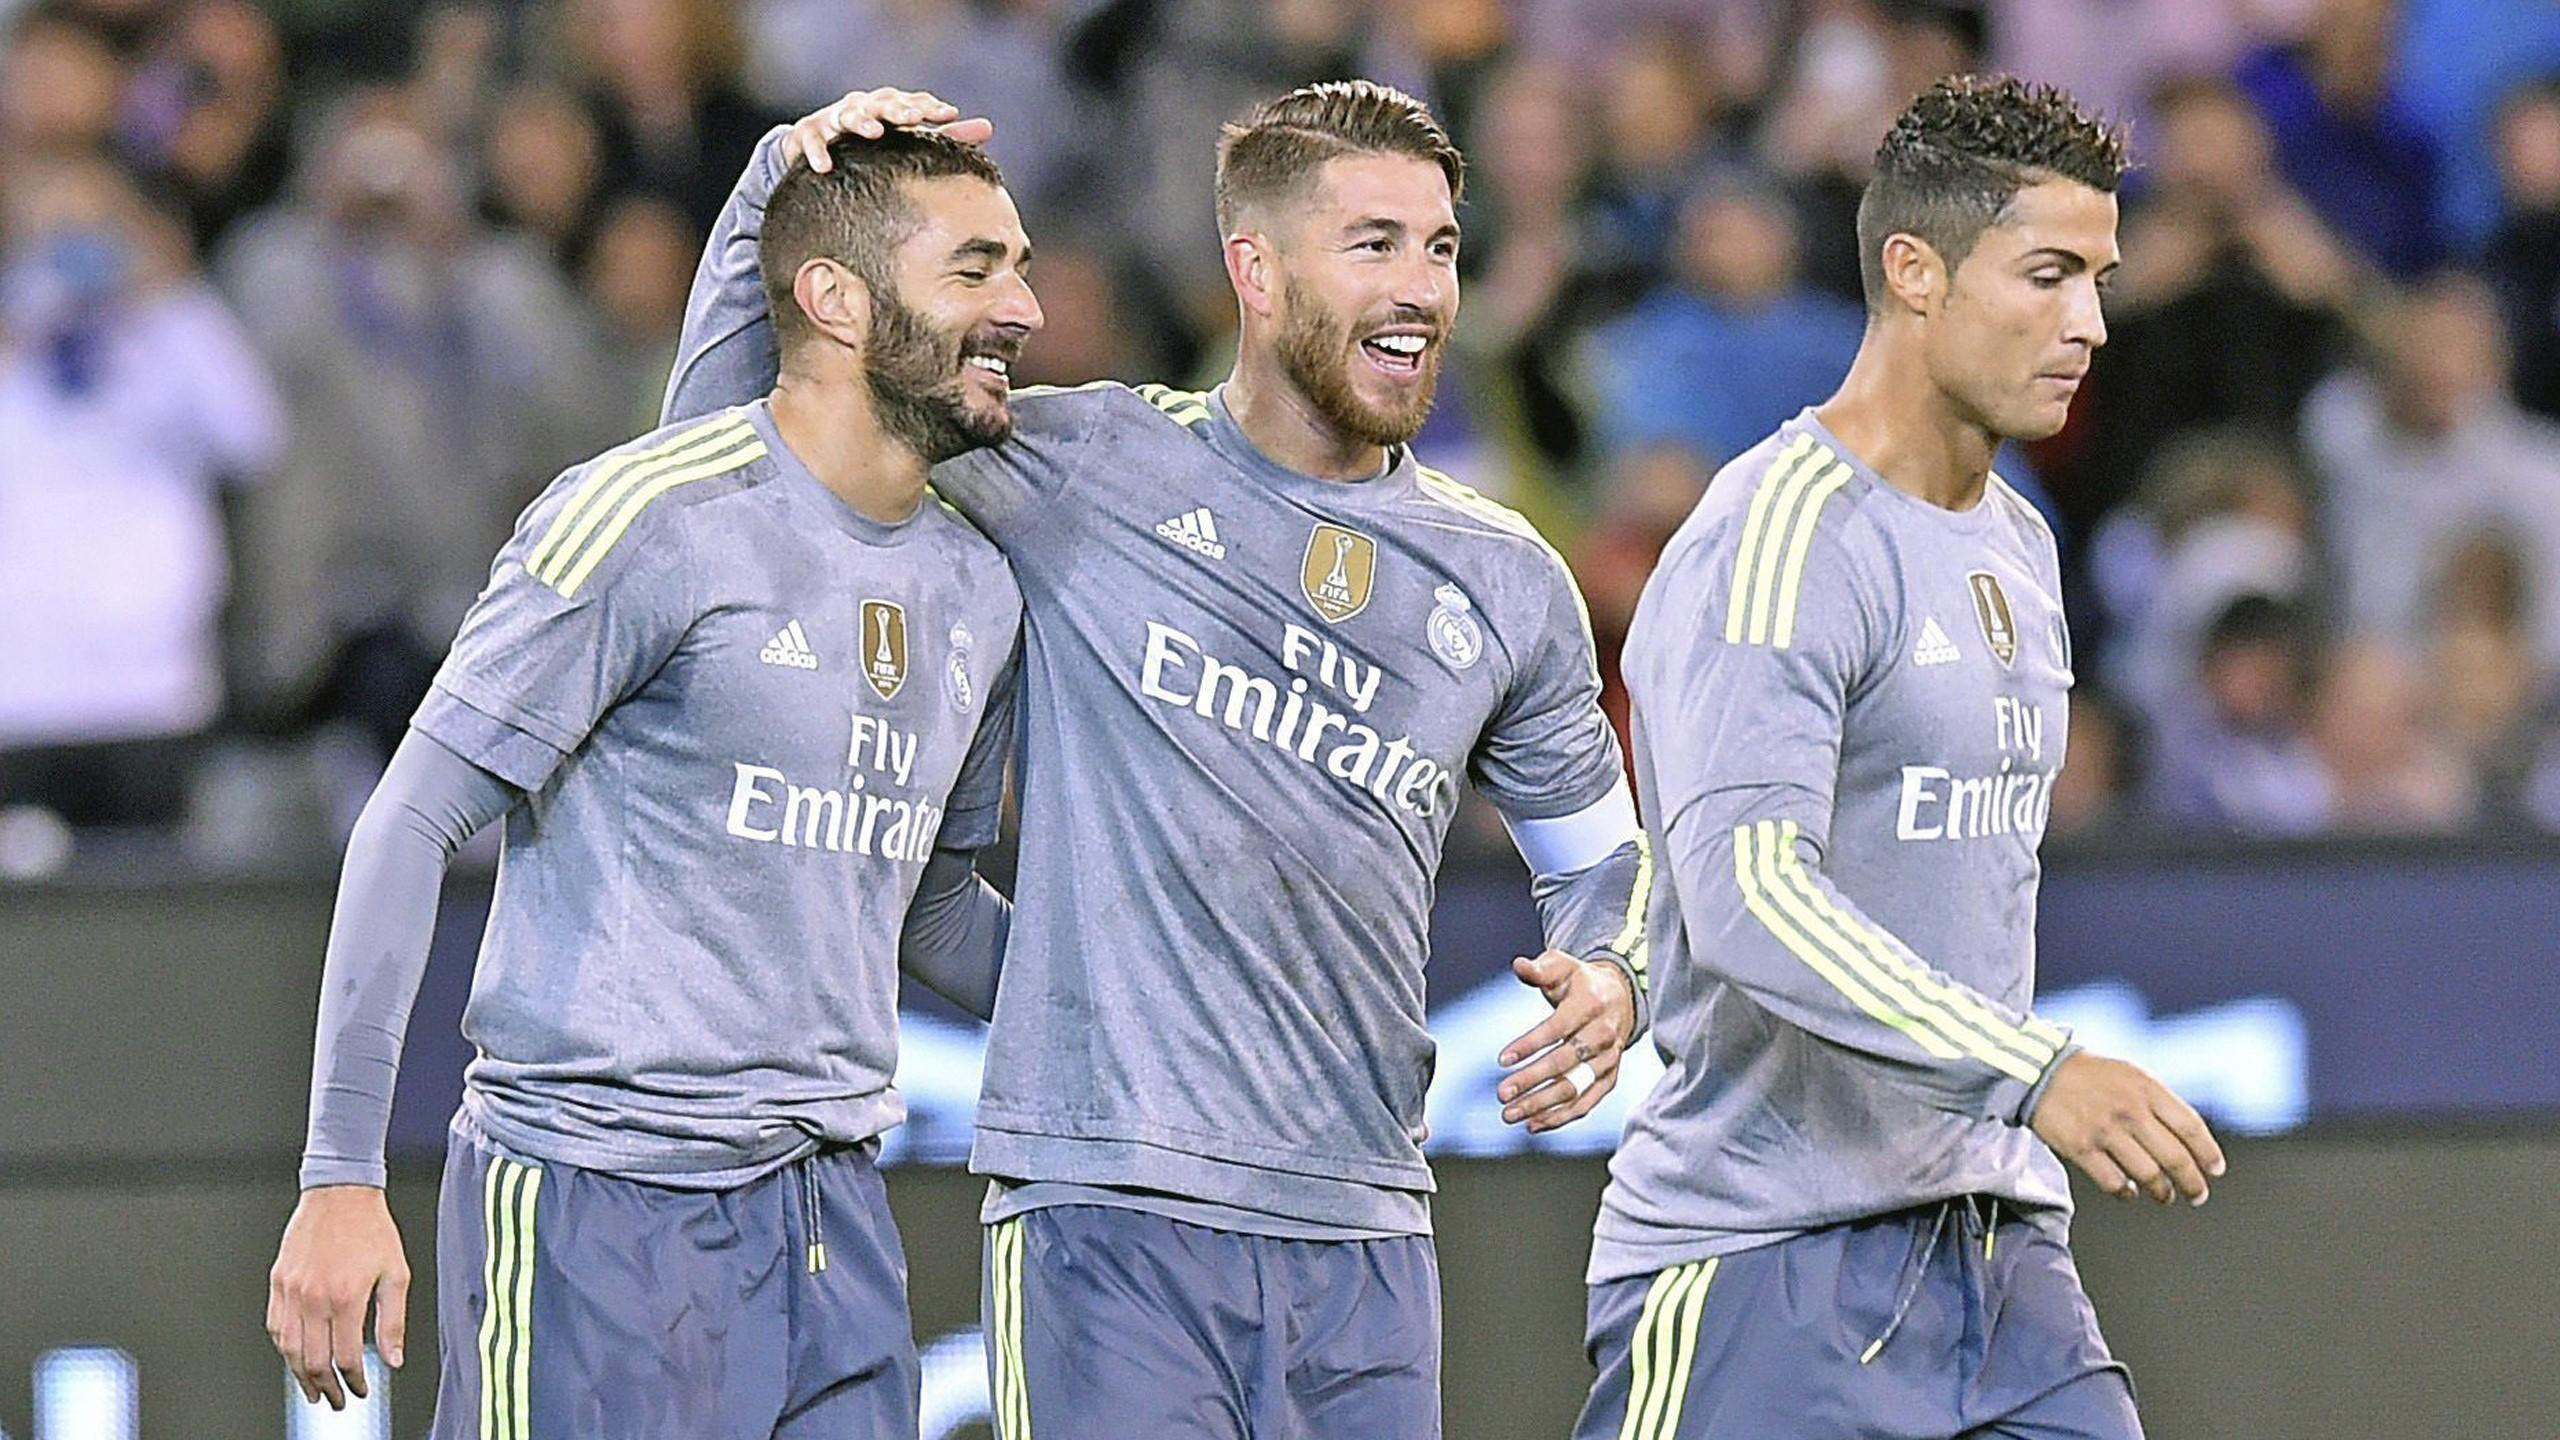 Real Madrid stars (L-R) Karim Benzema, Sergio Ramos and Cristiano Ronaldo are all expected to stay